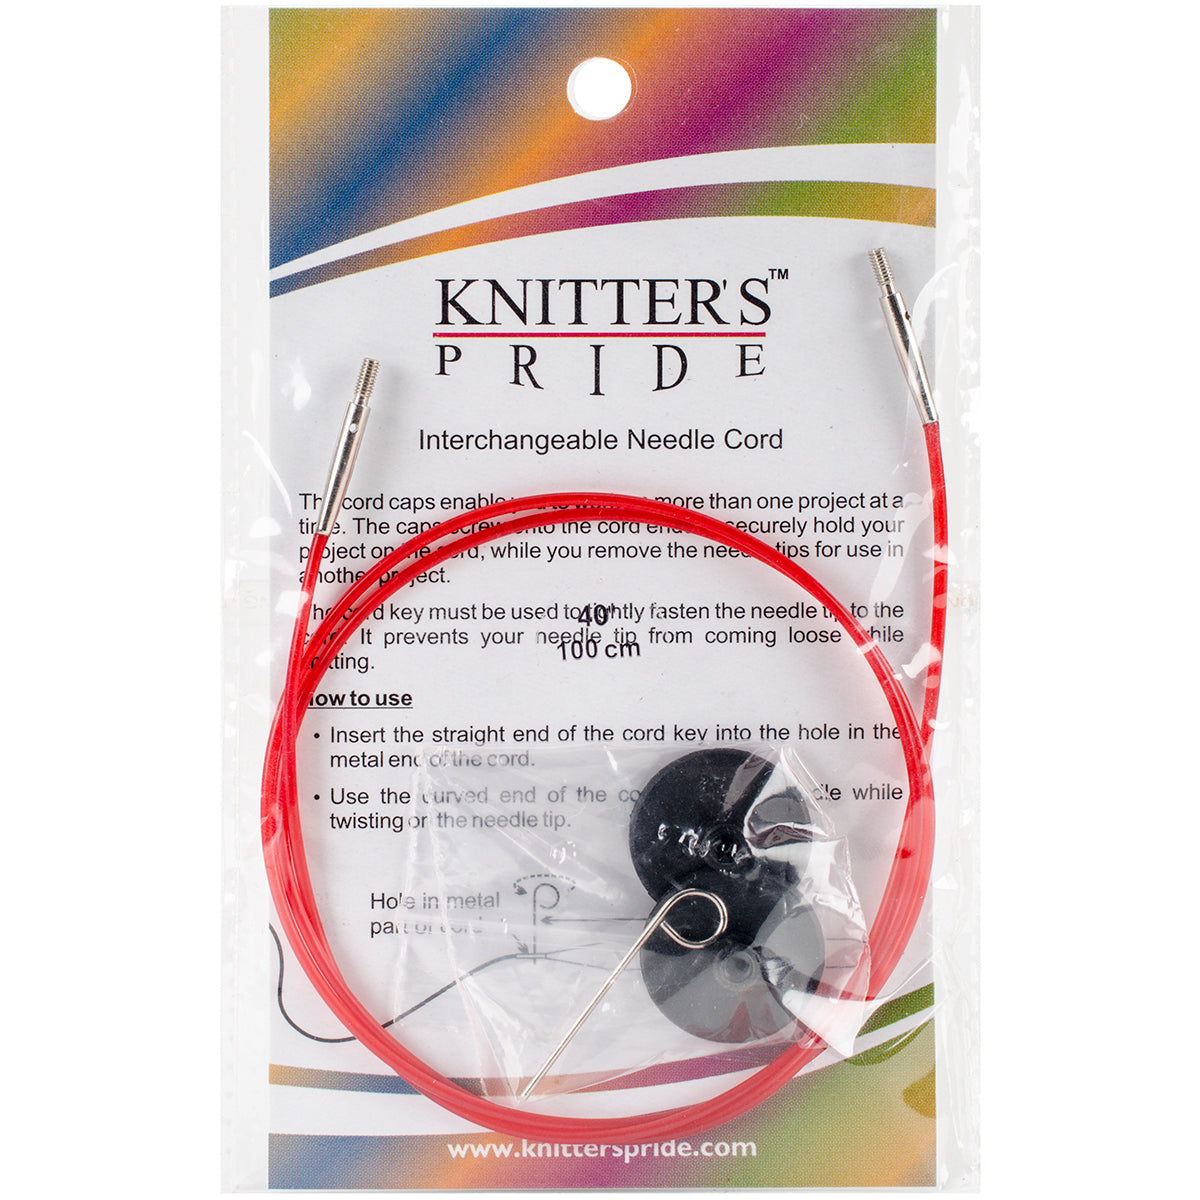 Knitter's Pride Interchangeable Needle Cord 40""